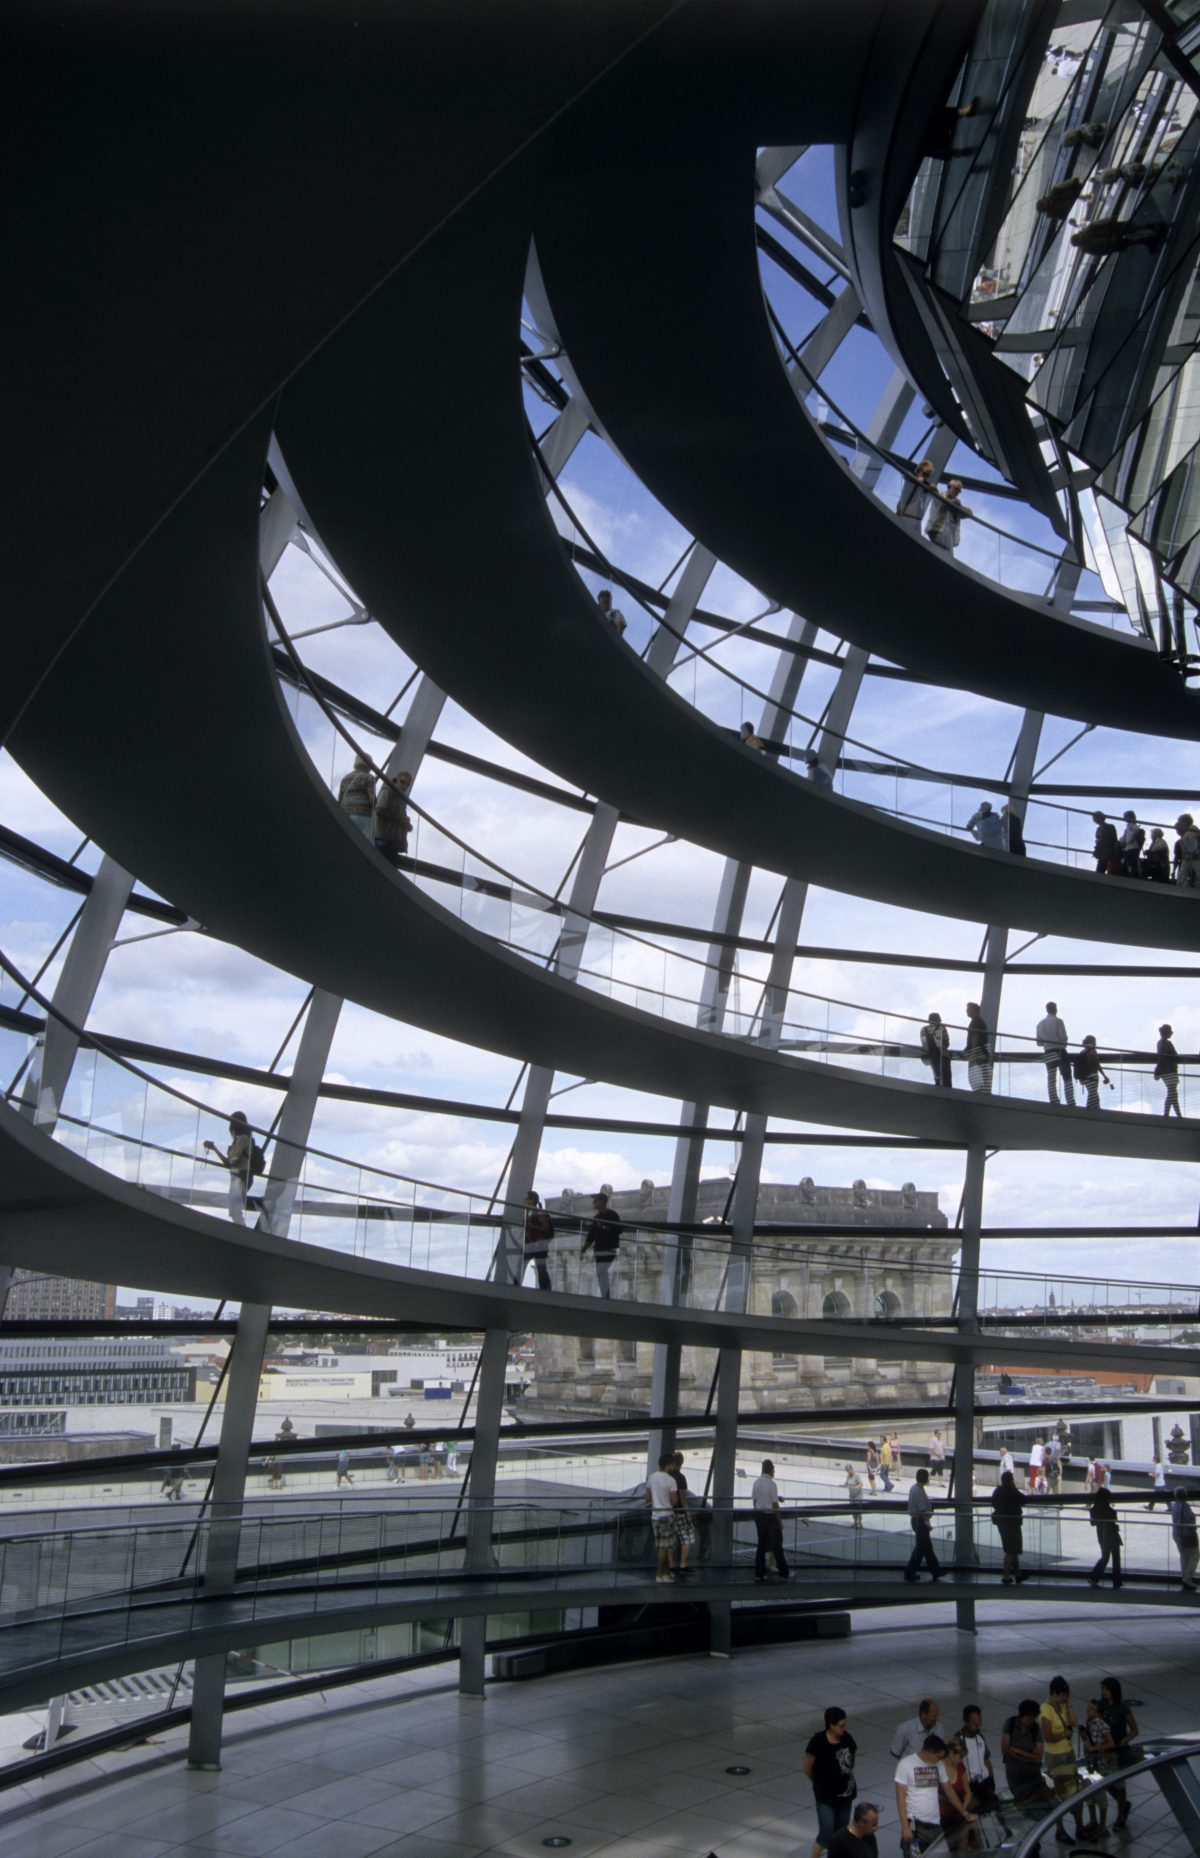 Reichstag dome - At the roof of the parliament, design, people, building